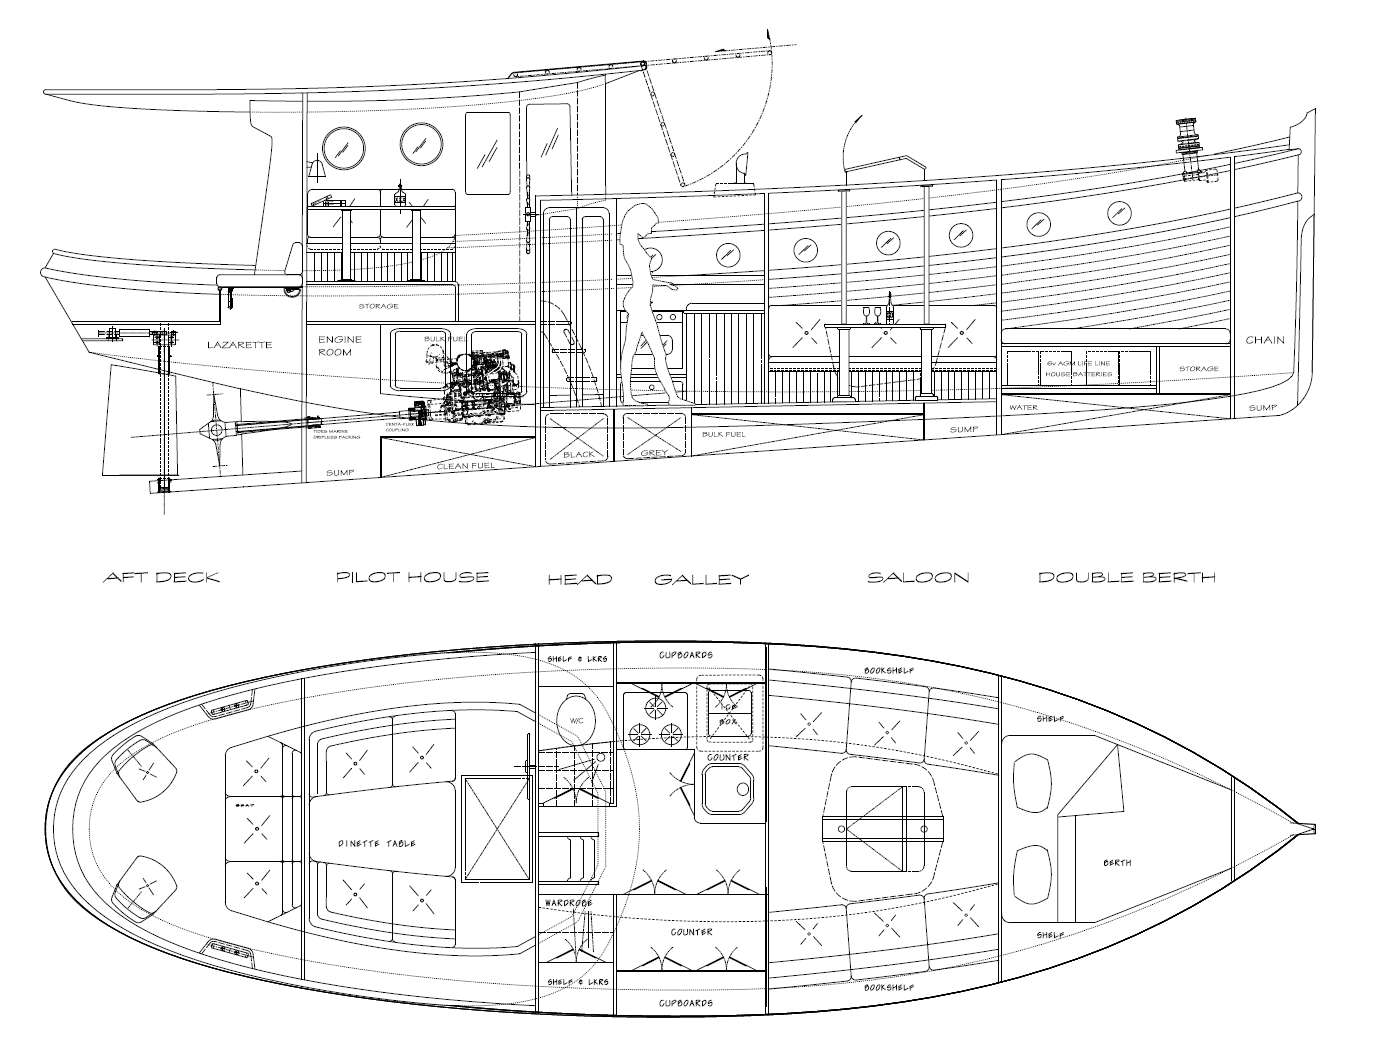 36 Molly Kasten Marine Design : molly36intlayout from www.kastenmarine.com size 1376 x 1047 png 195kB